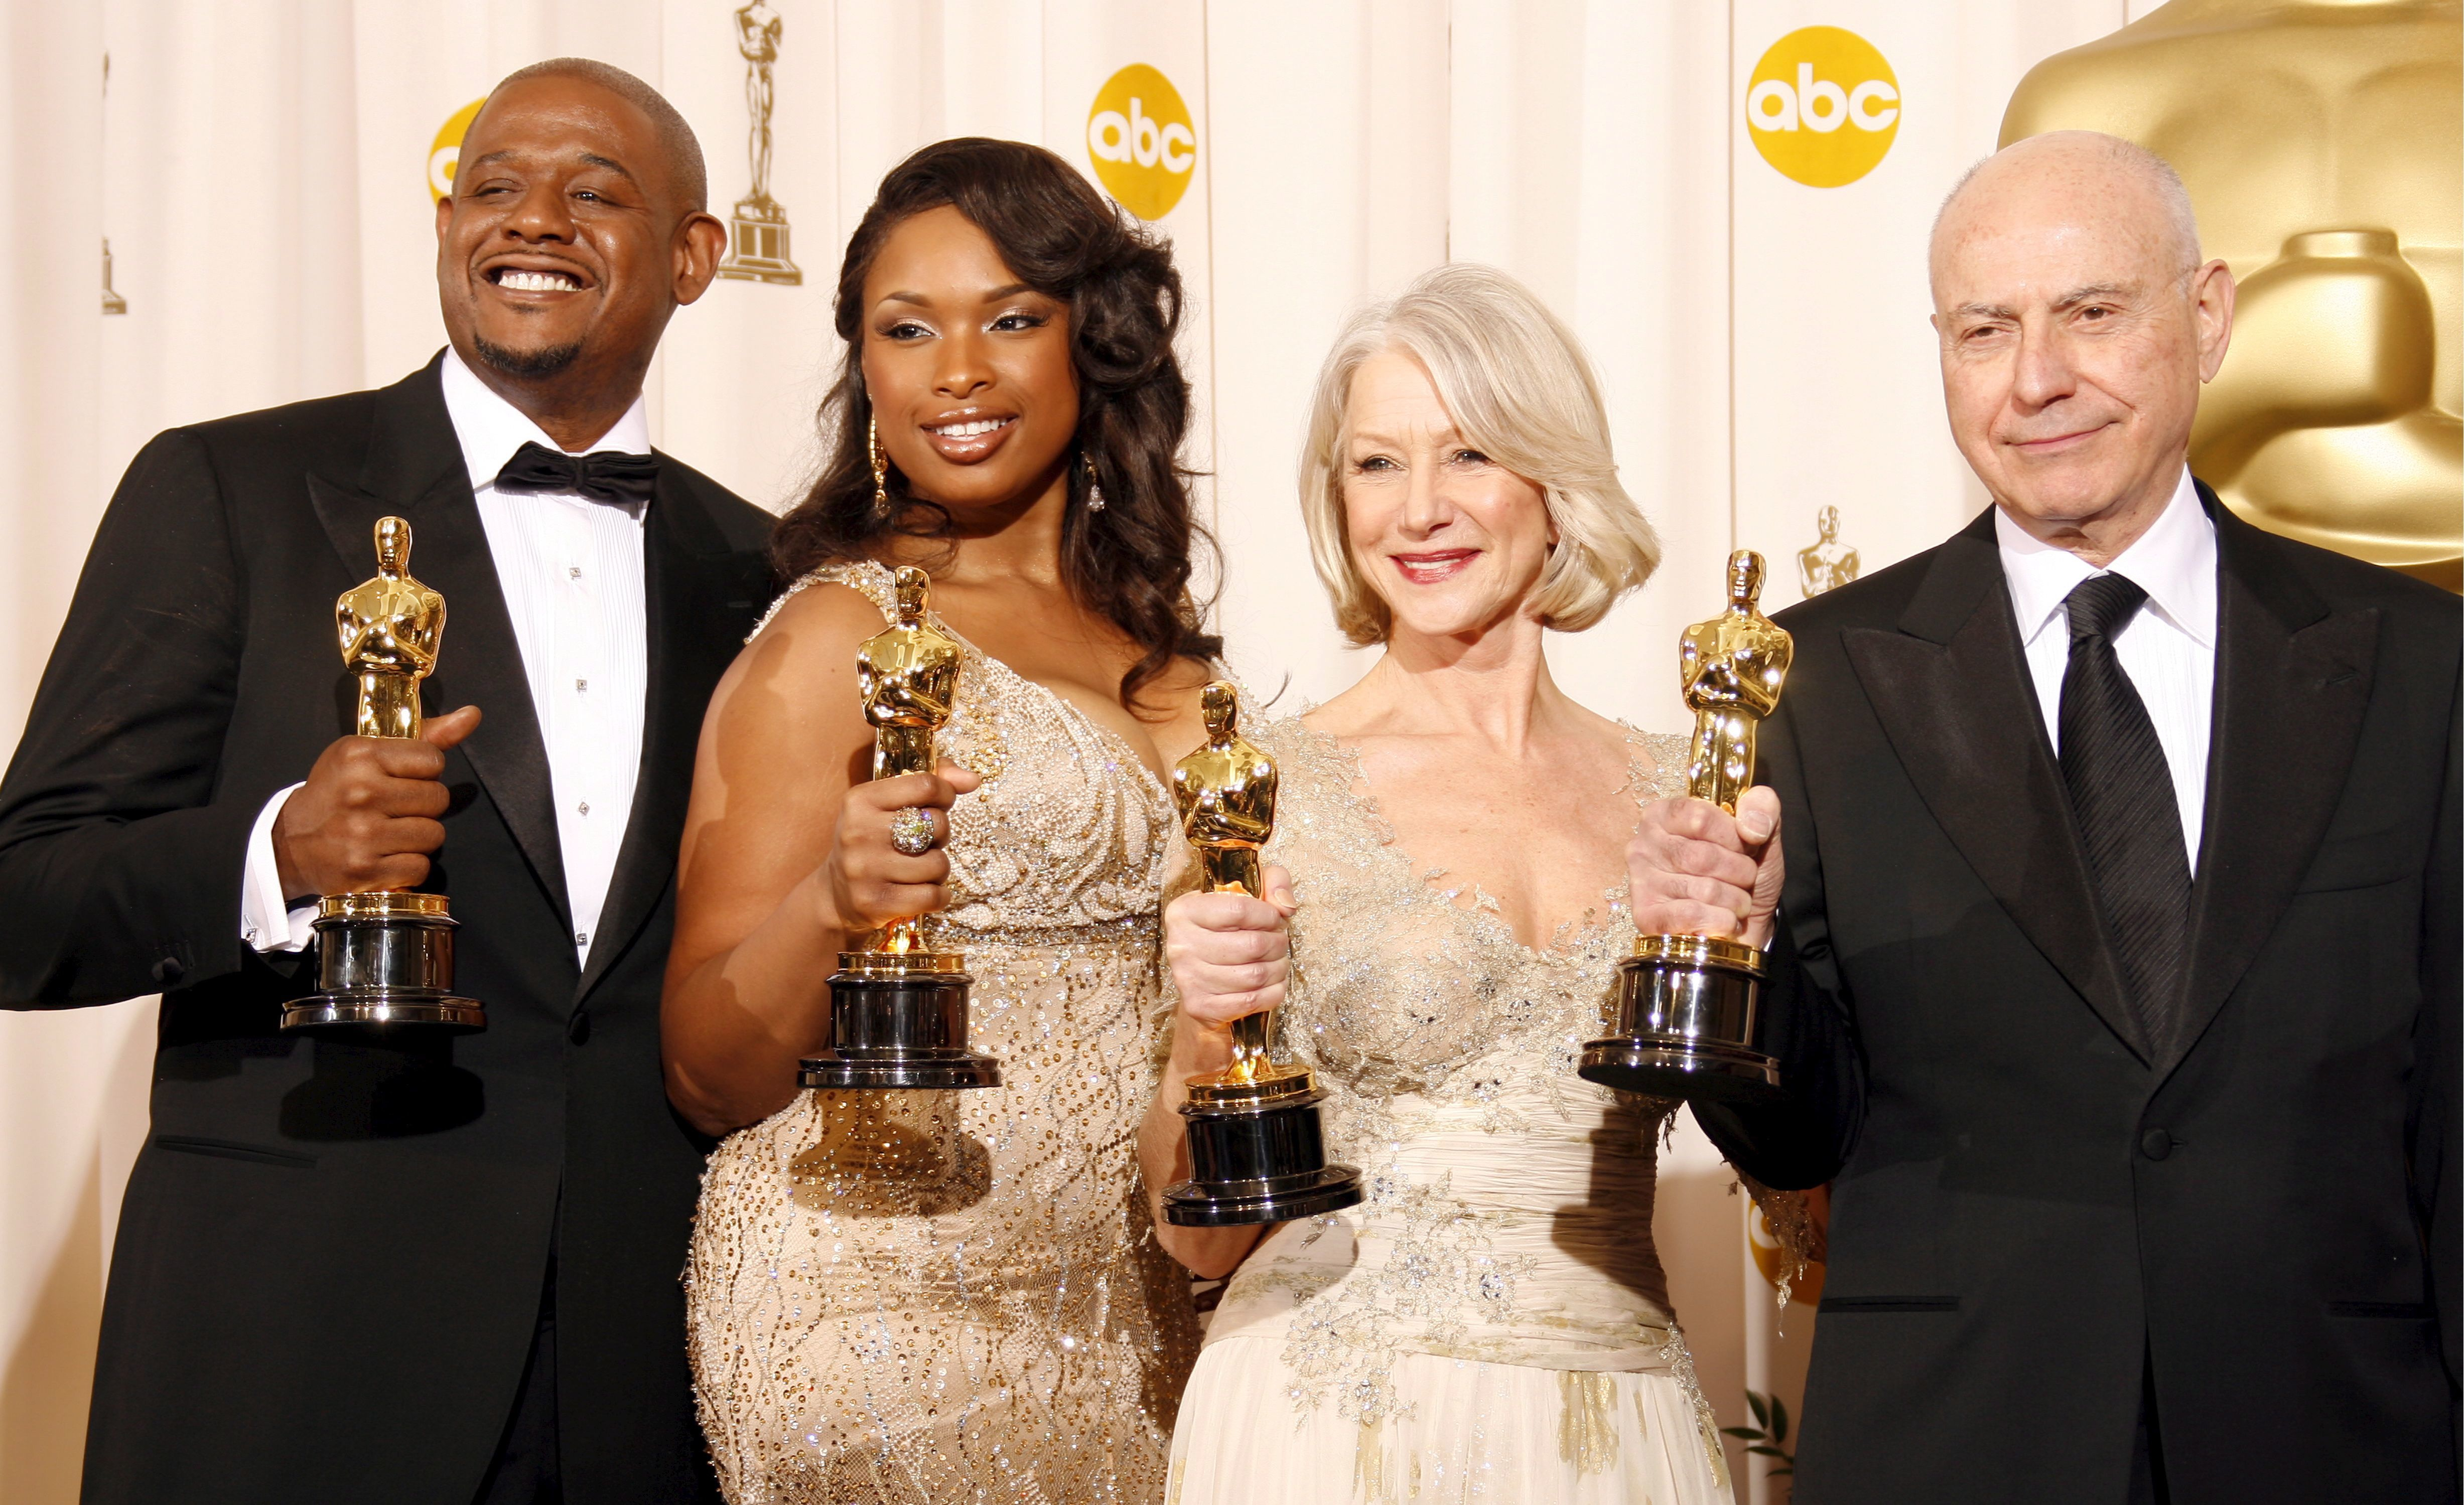 Forest Whitaker, Jennifer Hudson, Helen Mirren and Alan Arkin pose with their Oscars during the 79th Annual Academy Awards at the Kodak Theatre in Hollywood on Feb. 25, 2007.